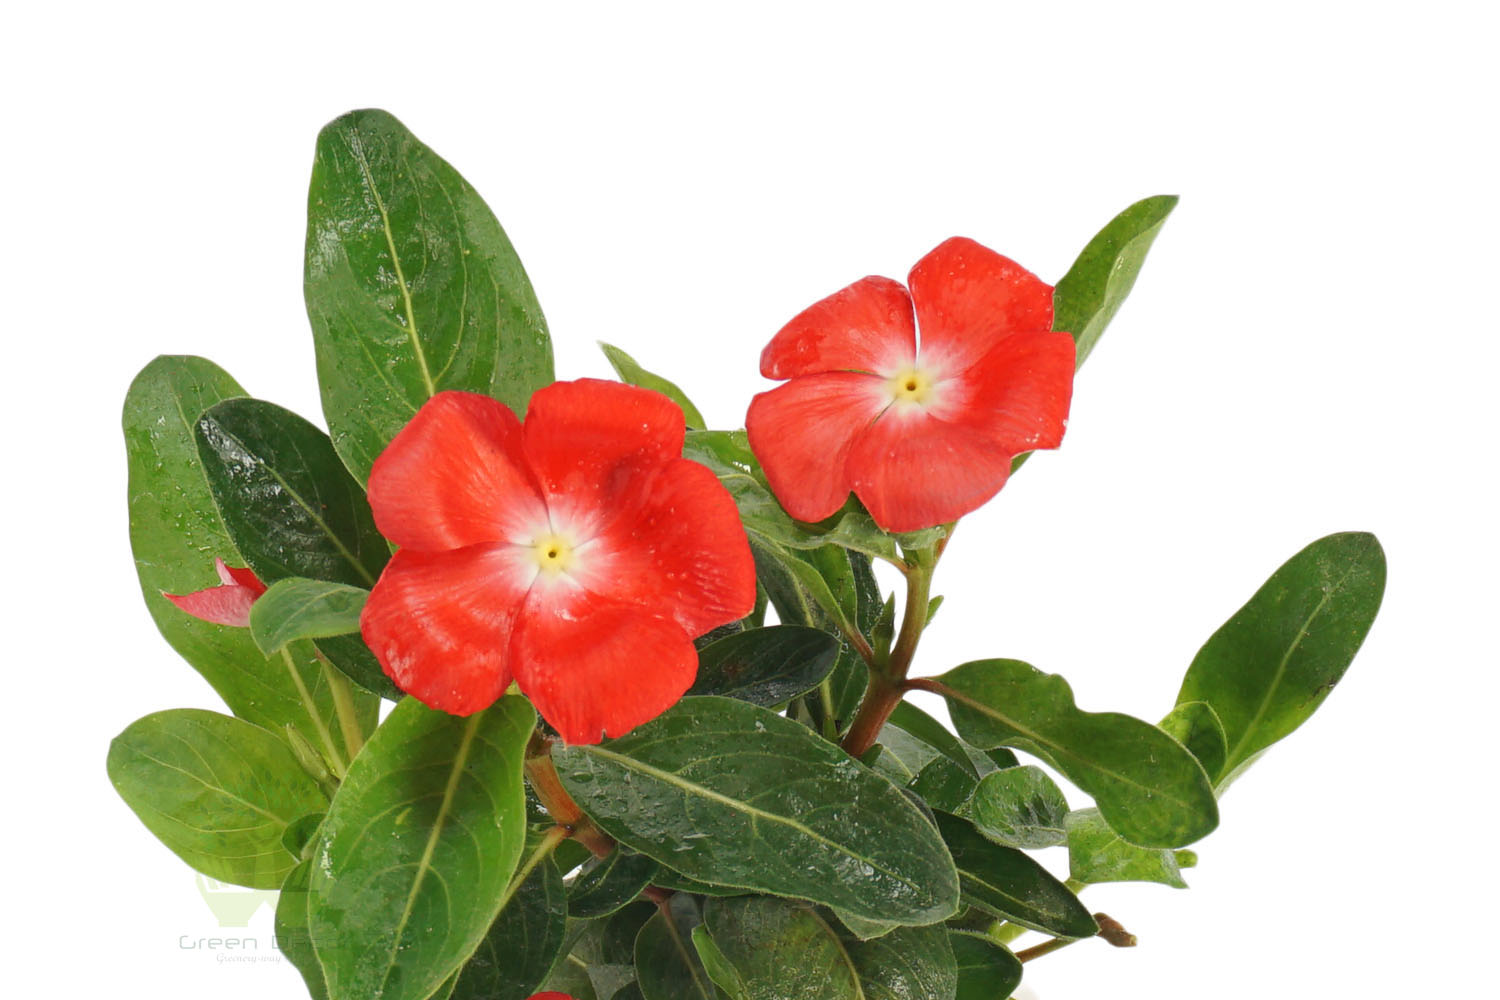 Buy Periwinkle Plants , White Pots and seeds in Delhi NCR by the best online nursery shop Greendecor.